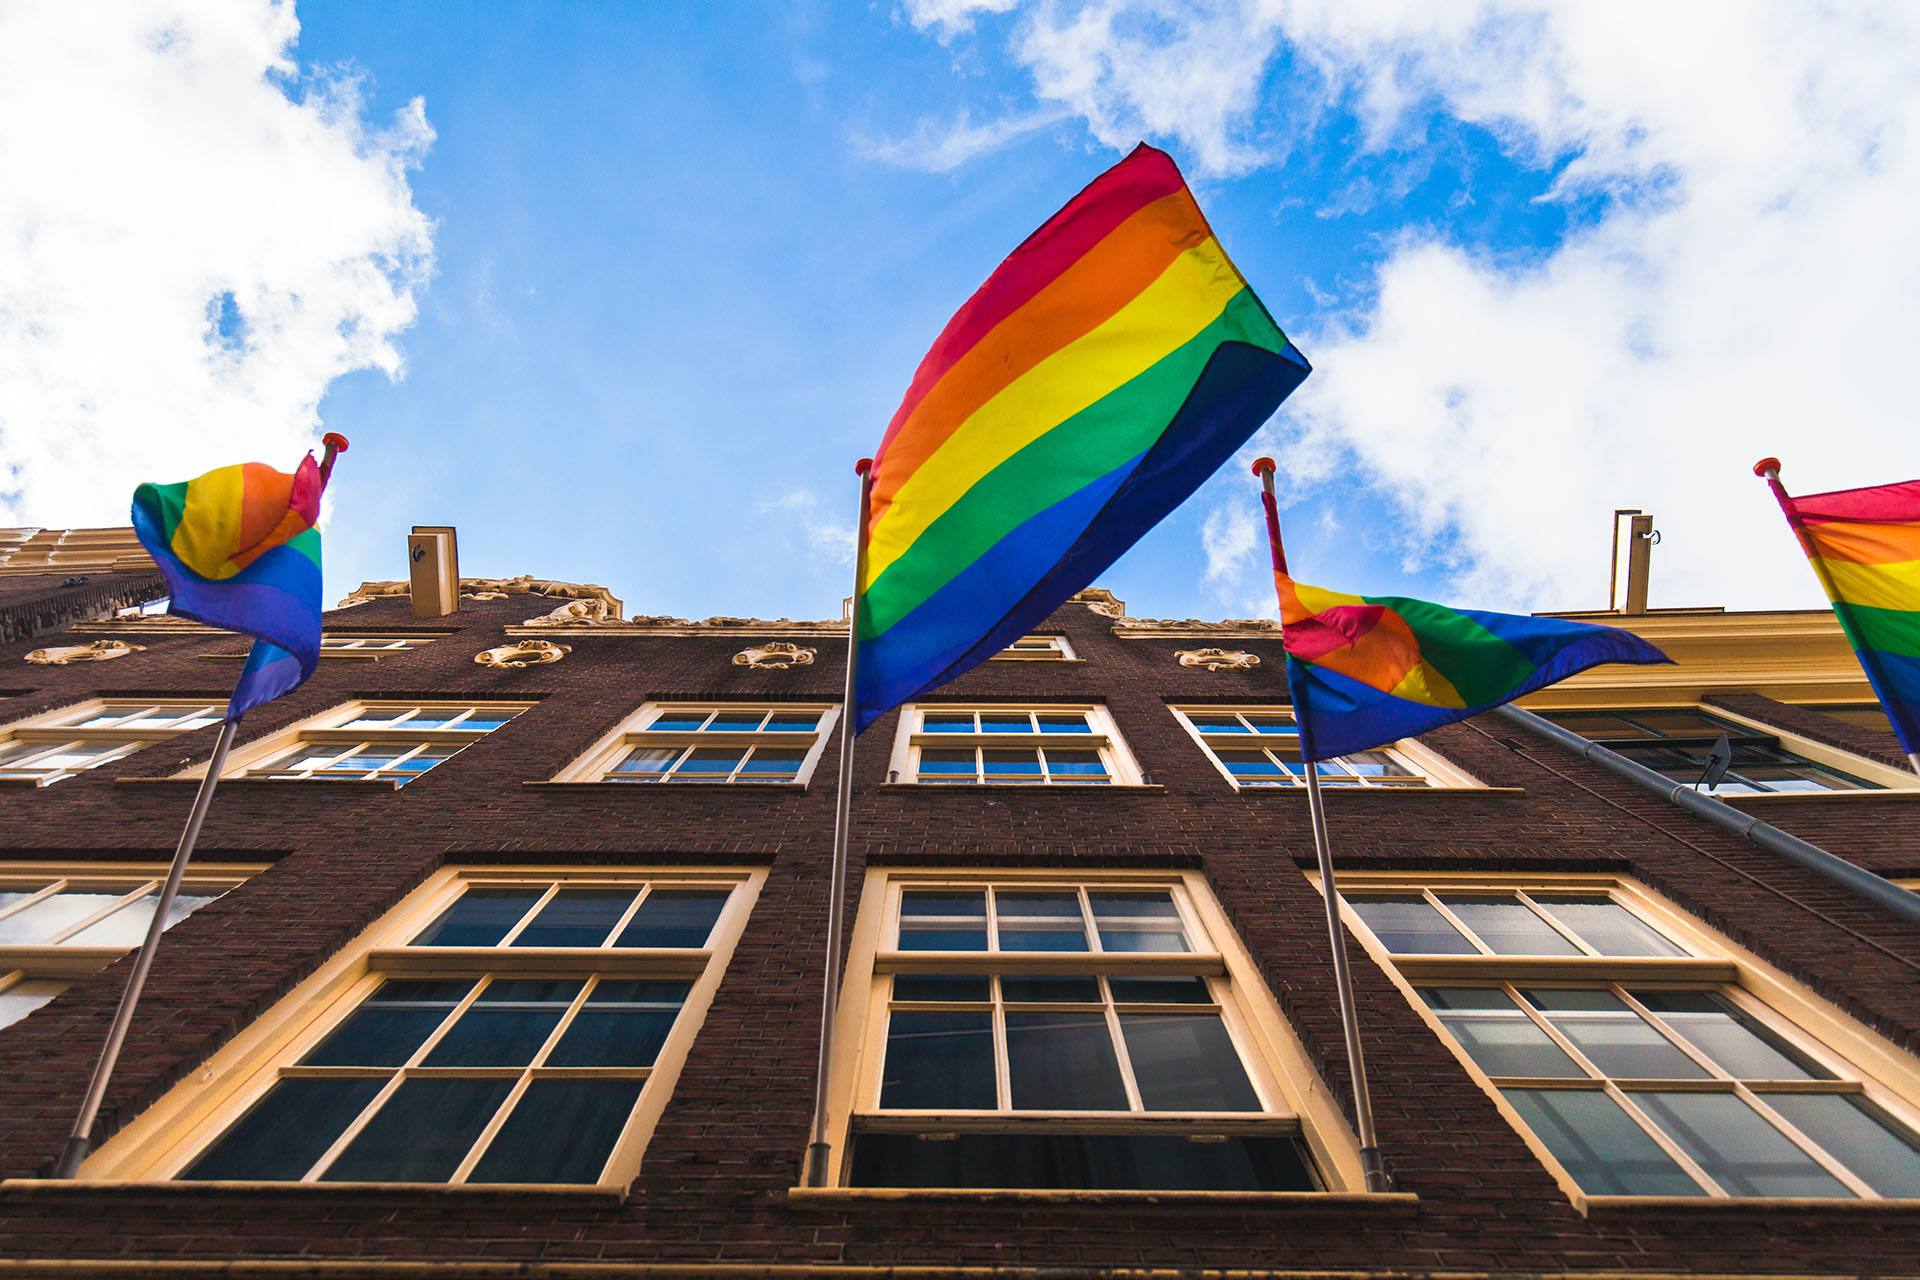 Quartier gay d'Amsterdam